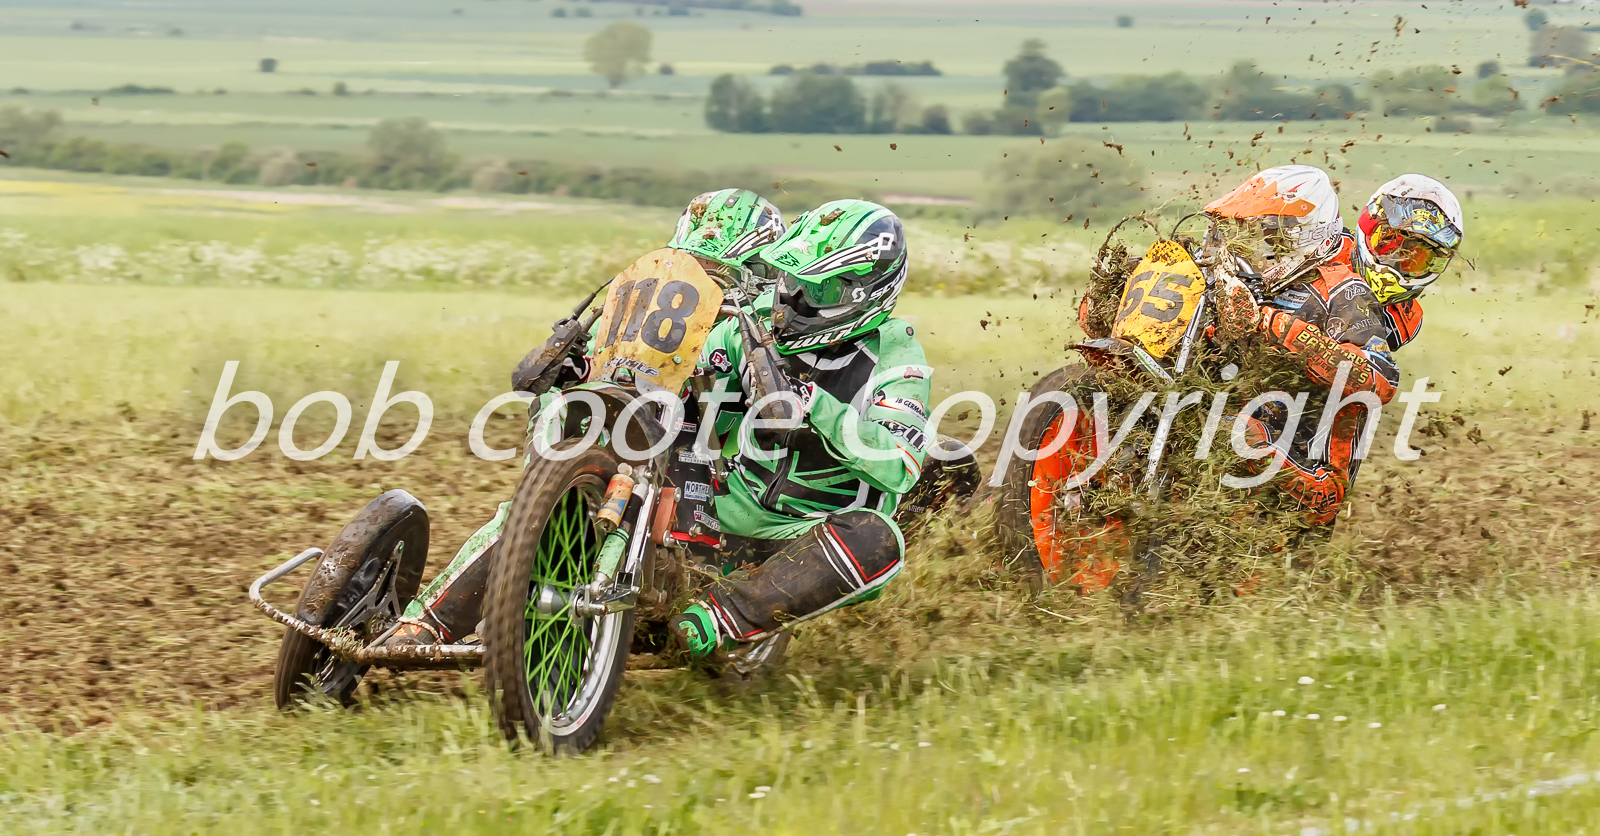 Grass track sidecar racing - Bob Coote